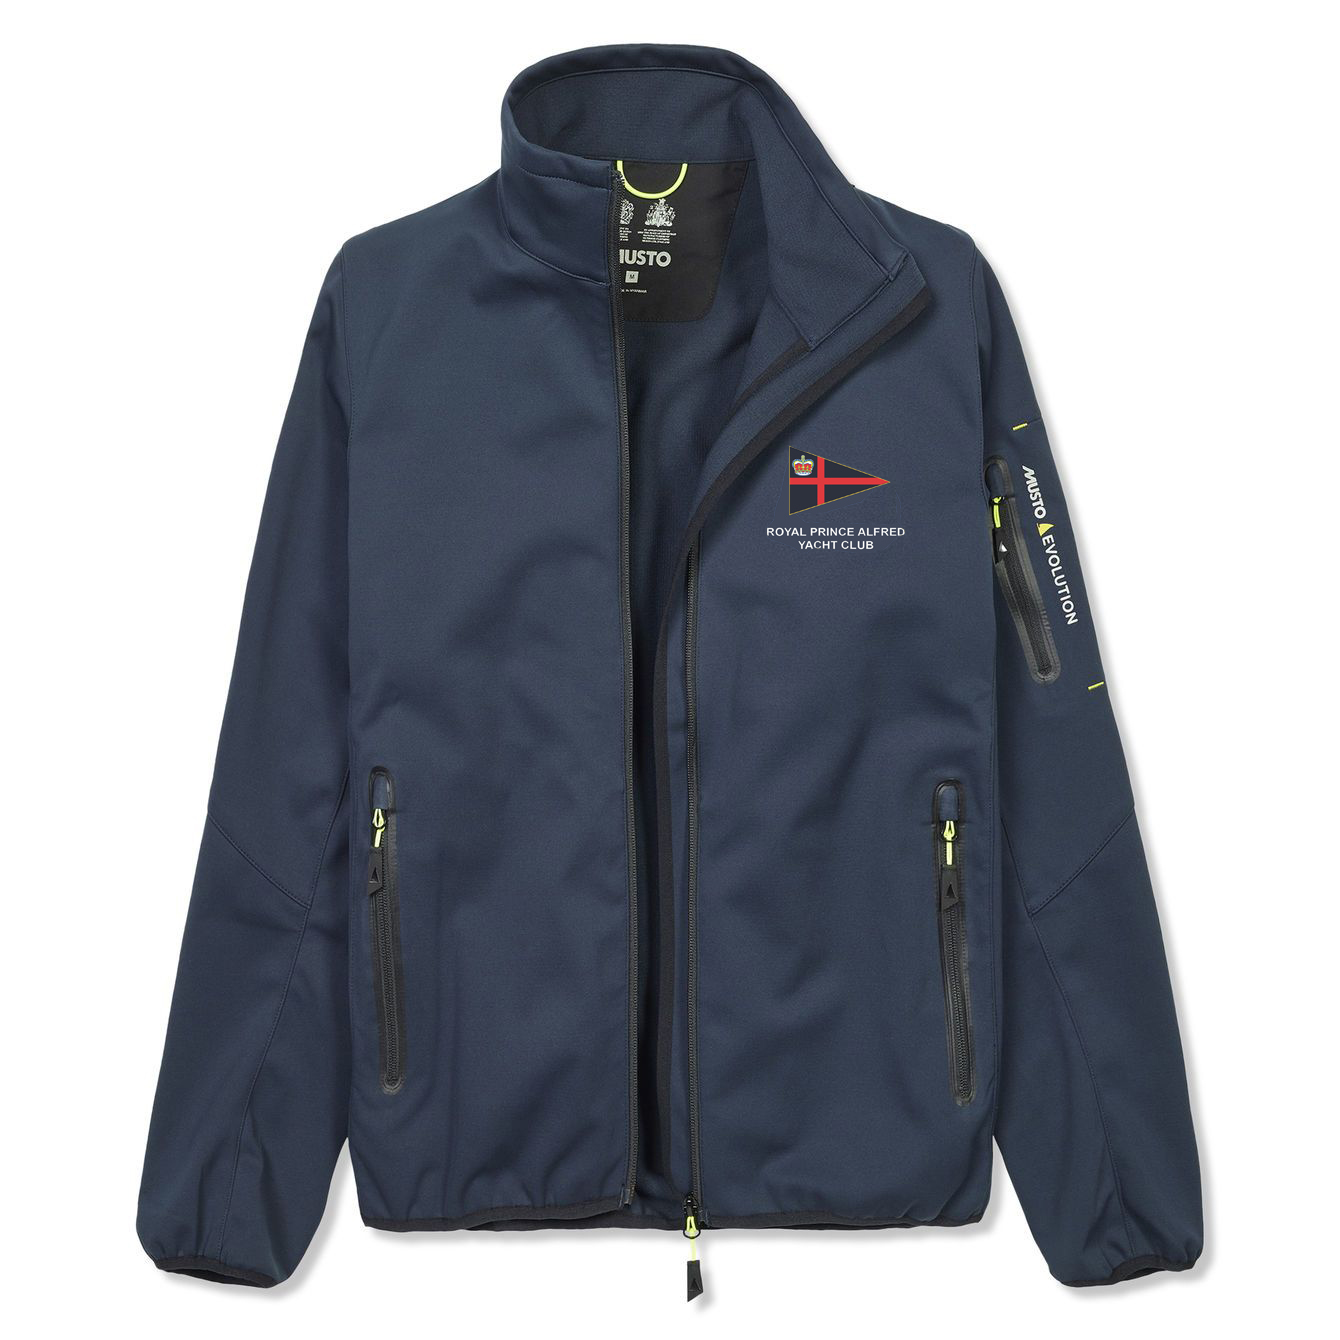 RPAYC Musto Softshell – Limited Edition